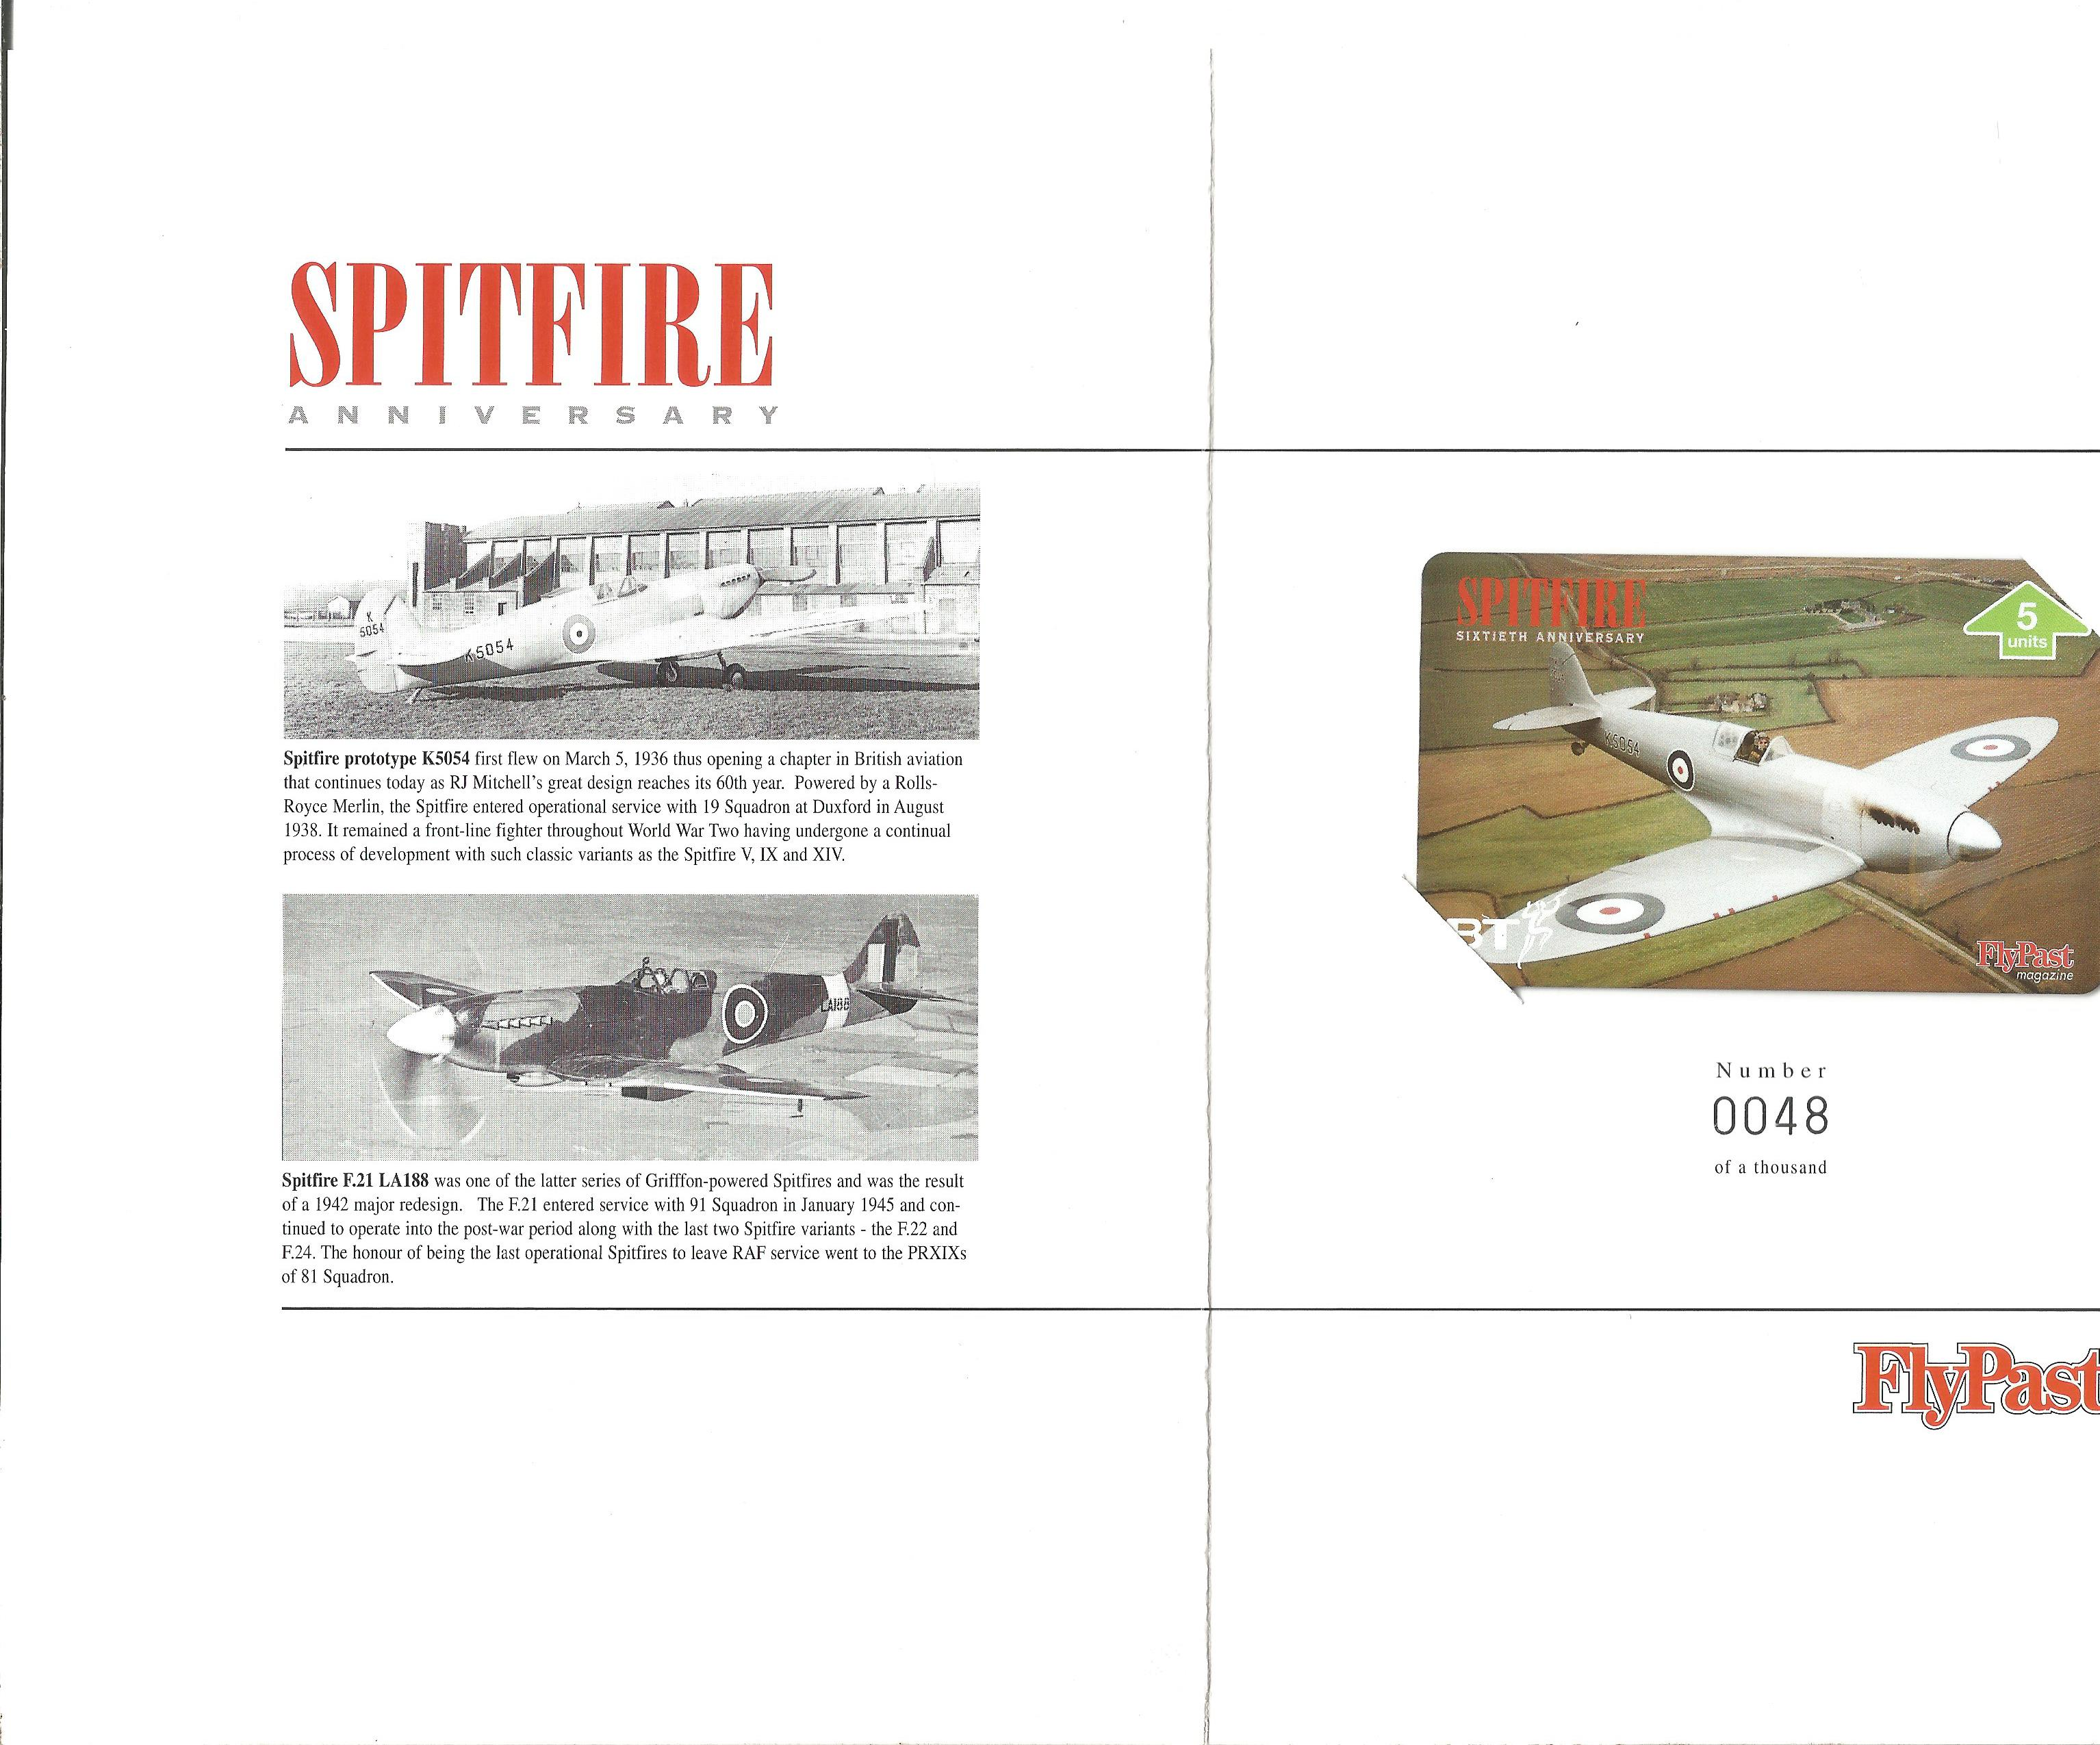 World War II phone card collection 2, limited edition includes Spitfire Anniversary sixty years 1936 - Image 2 of 2